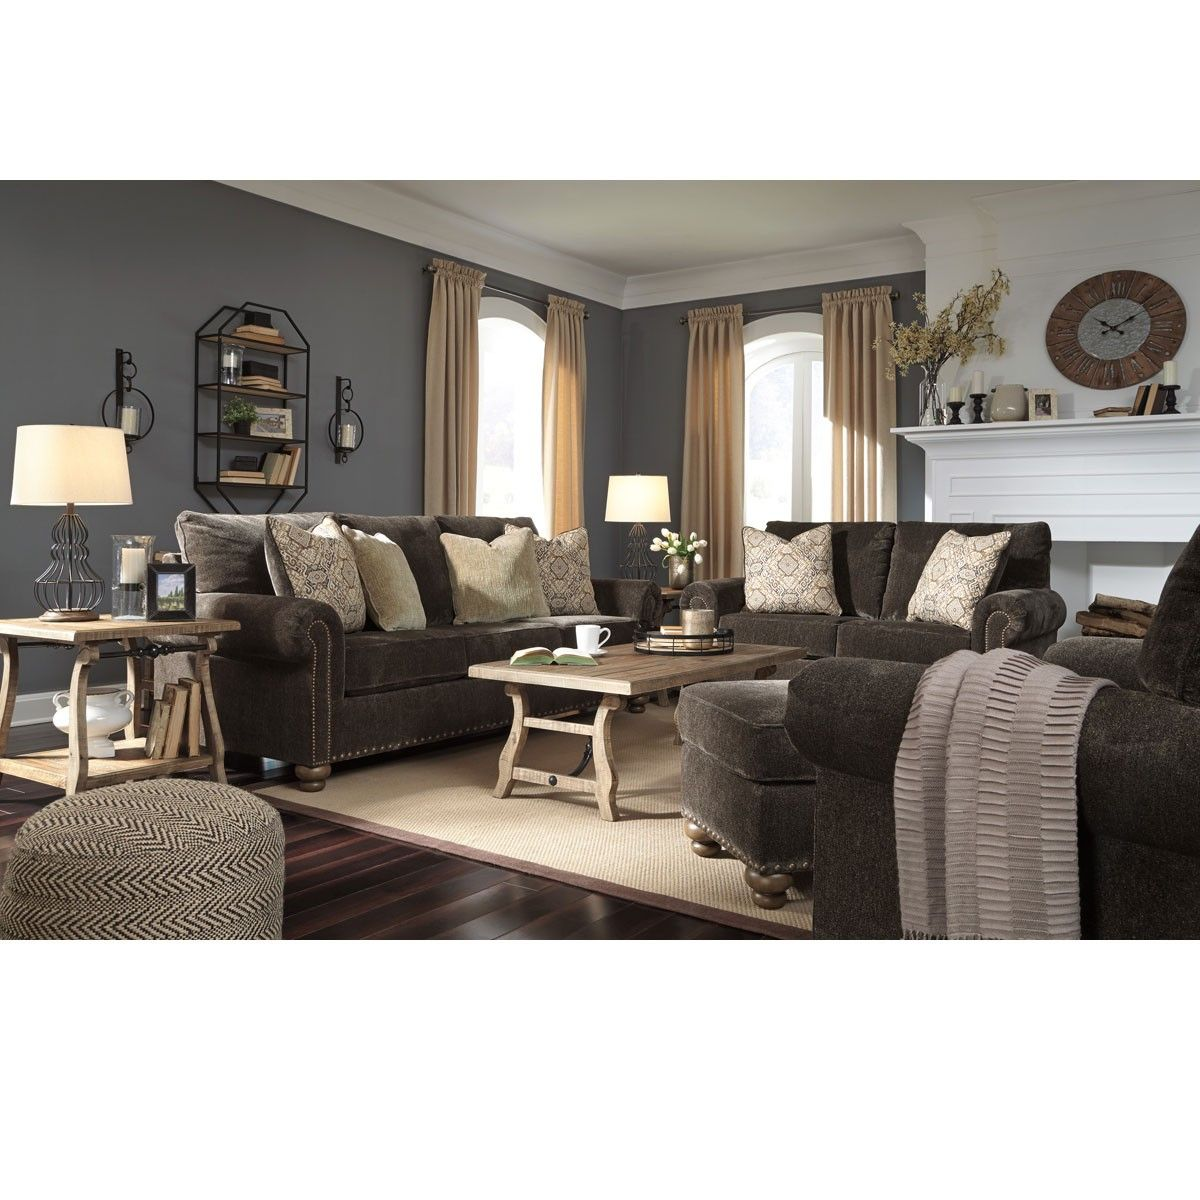 10 Awesome Ways How To Build Cook Brothers Living Room Sets In 2021 Living Room Sets Contemporary Fabric Sofa 3 Piece Living Room Set